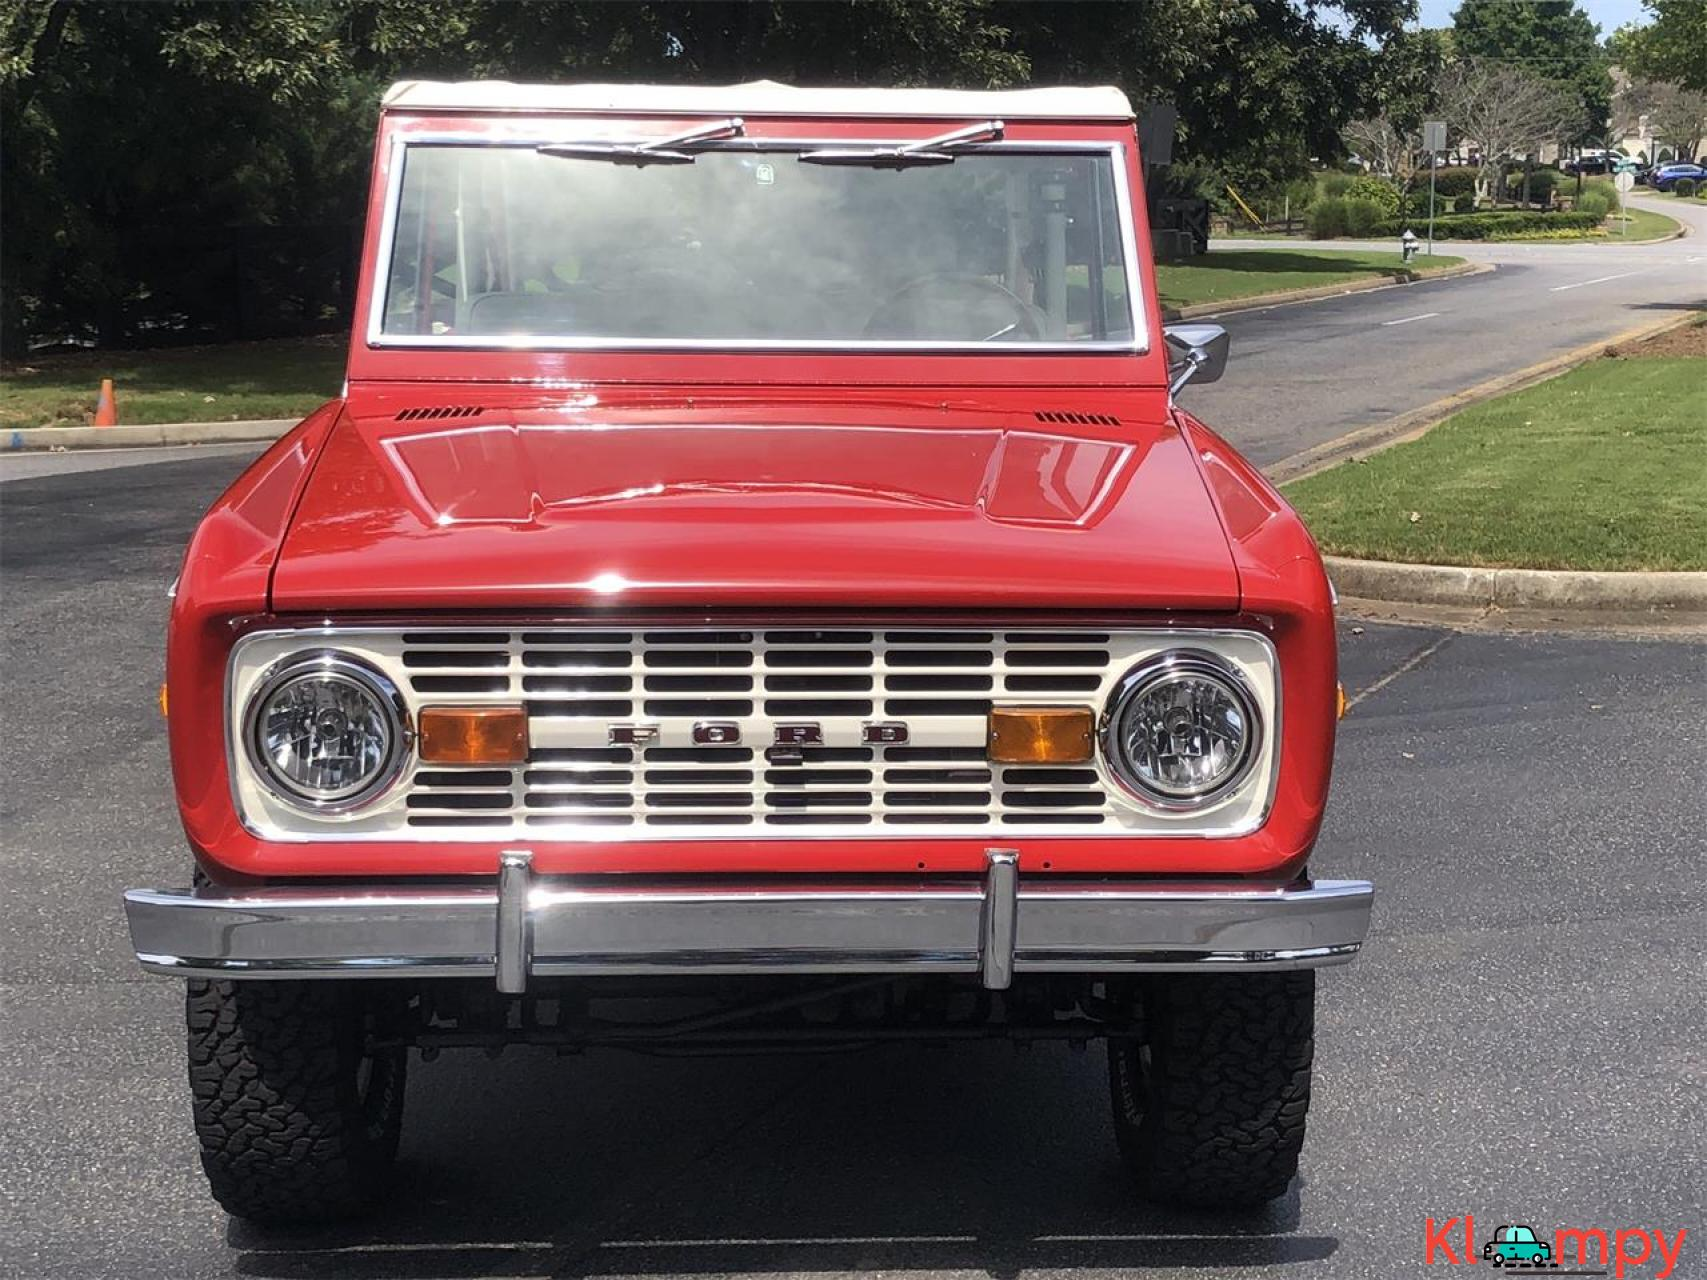 1974 Ford Bronco STRONG 302 - 8/20